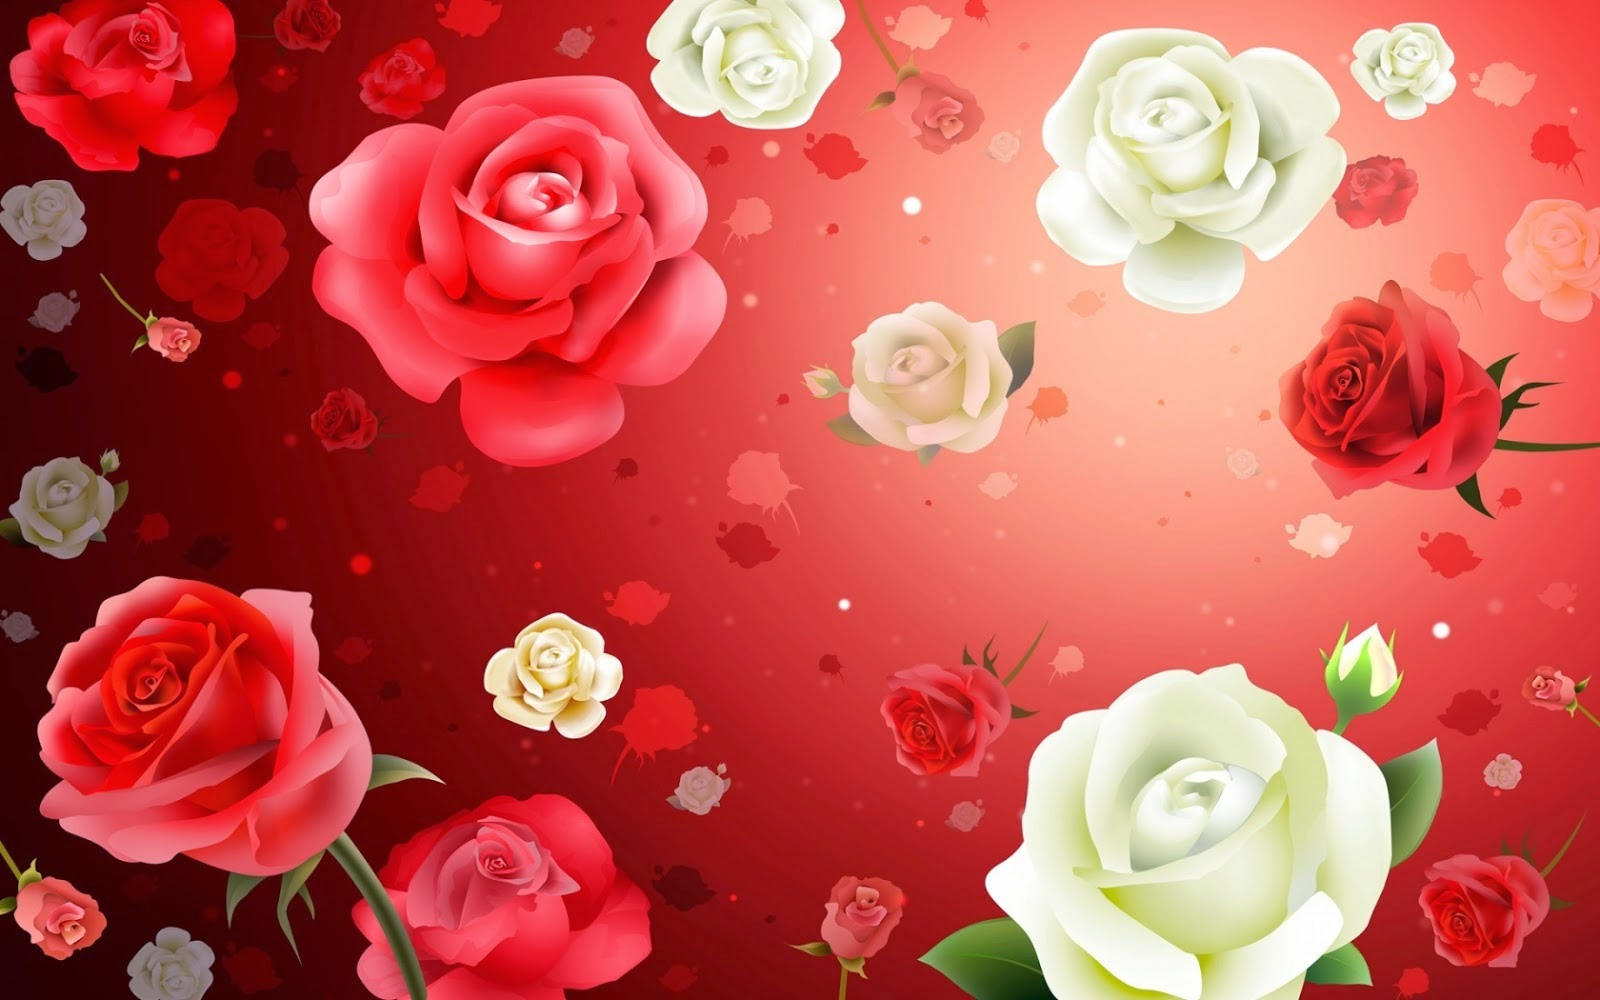 Most beautiful flower wallpapers worldhttprefreshrosespot beautiful flower wallpaper for android izmirmasajfo